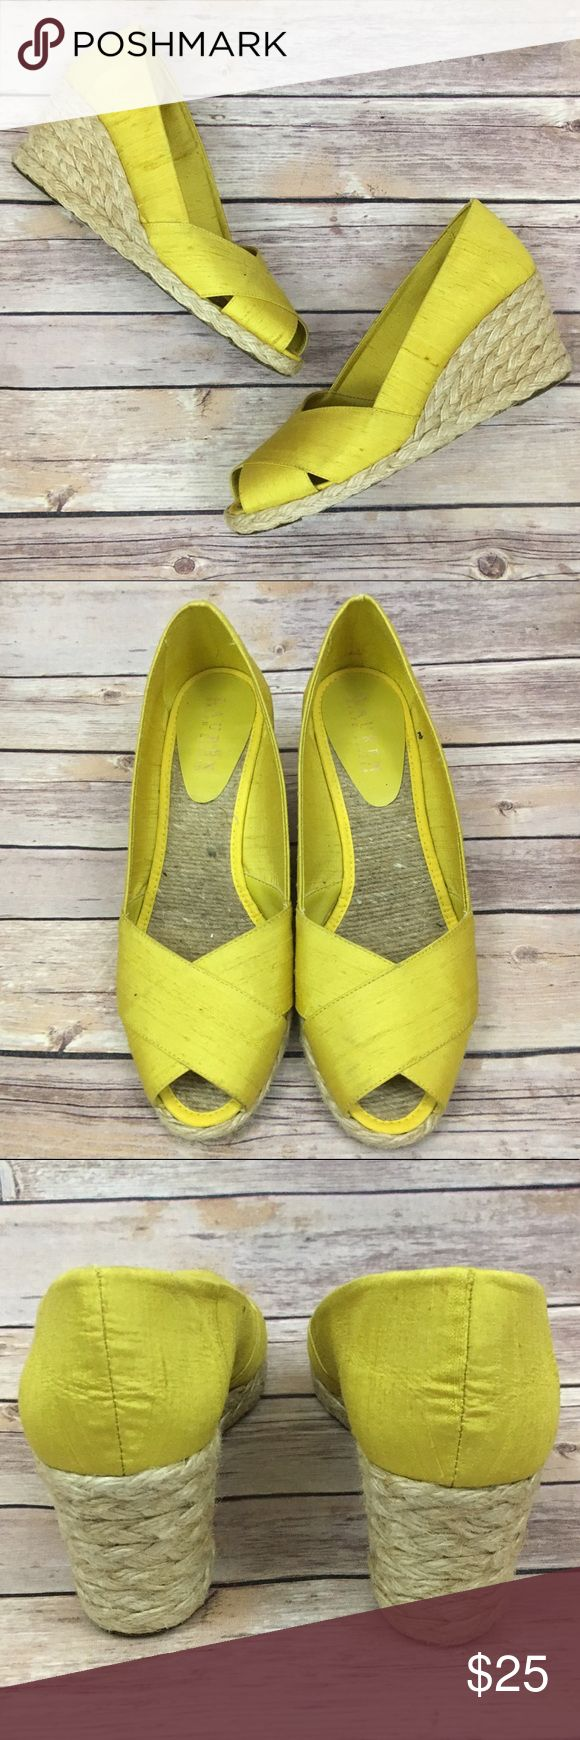 Ralph Lauren 8 Yellow Espadrilles Opened Toe Shoes Ralph Lauren Womens Size 8 Yellow Espadrilles Opened Toe Wedge Shoes SPAIN Lauren Ralph Lauren Shoes Sandals